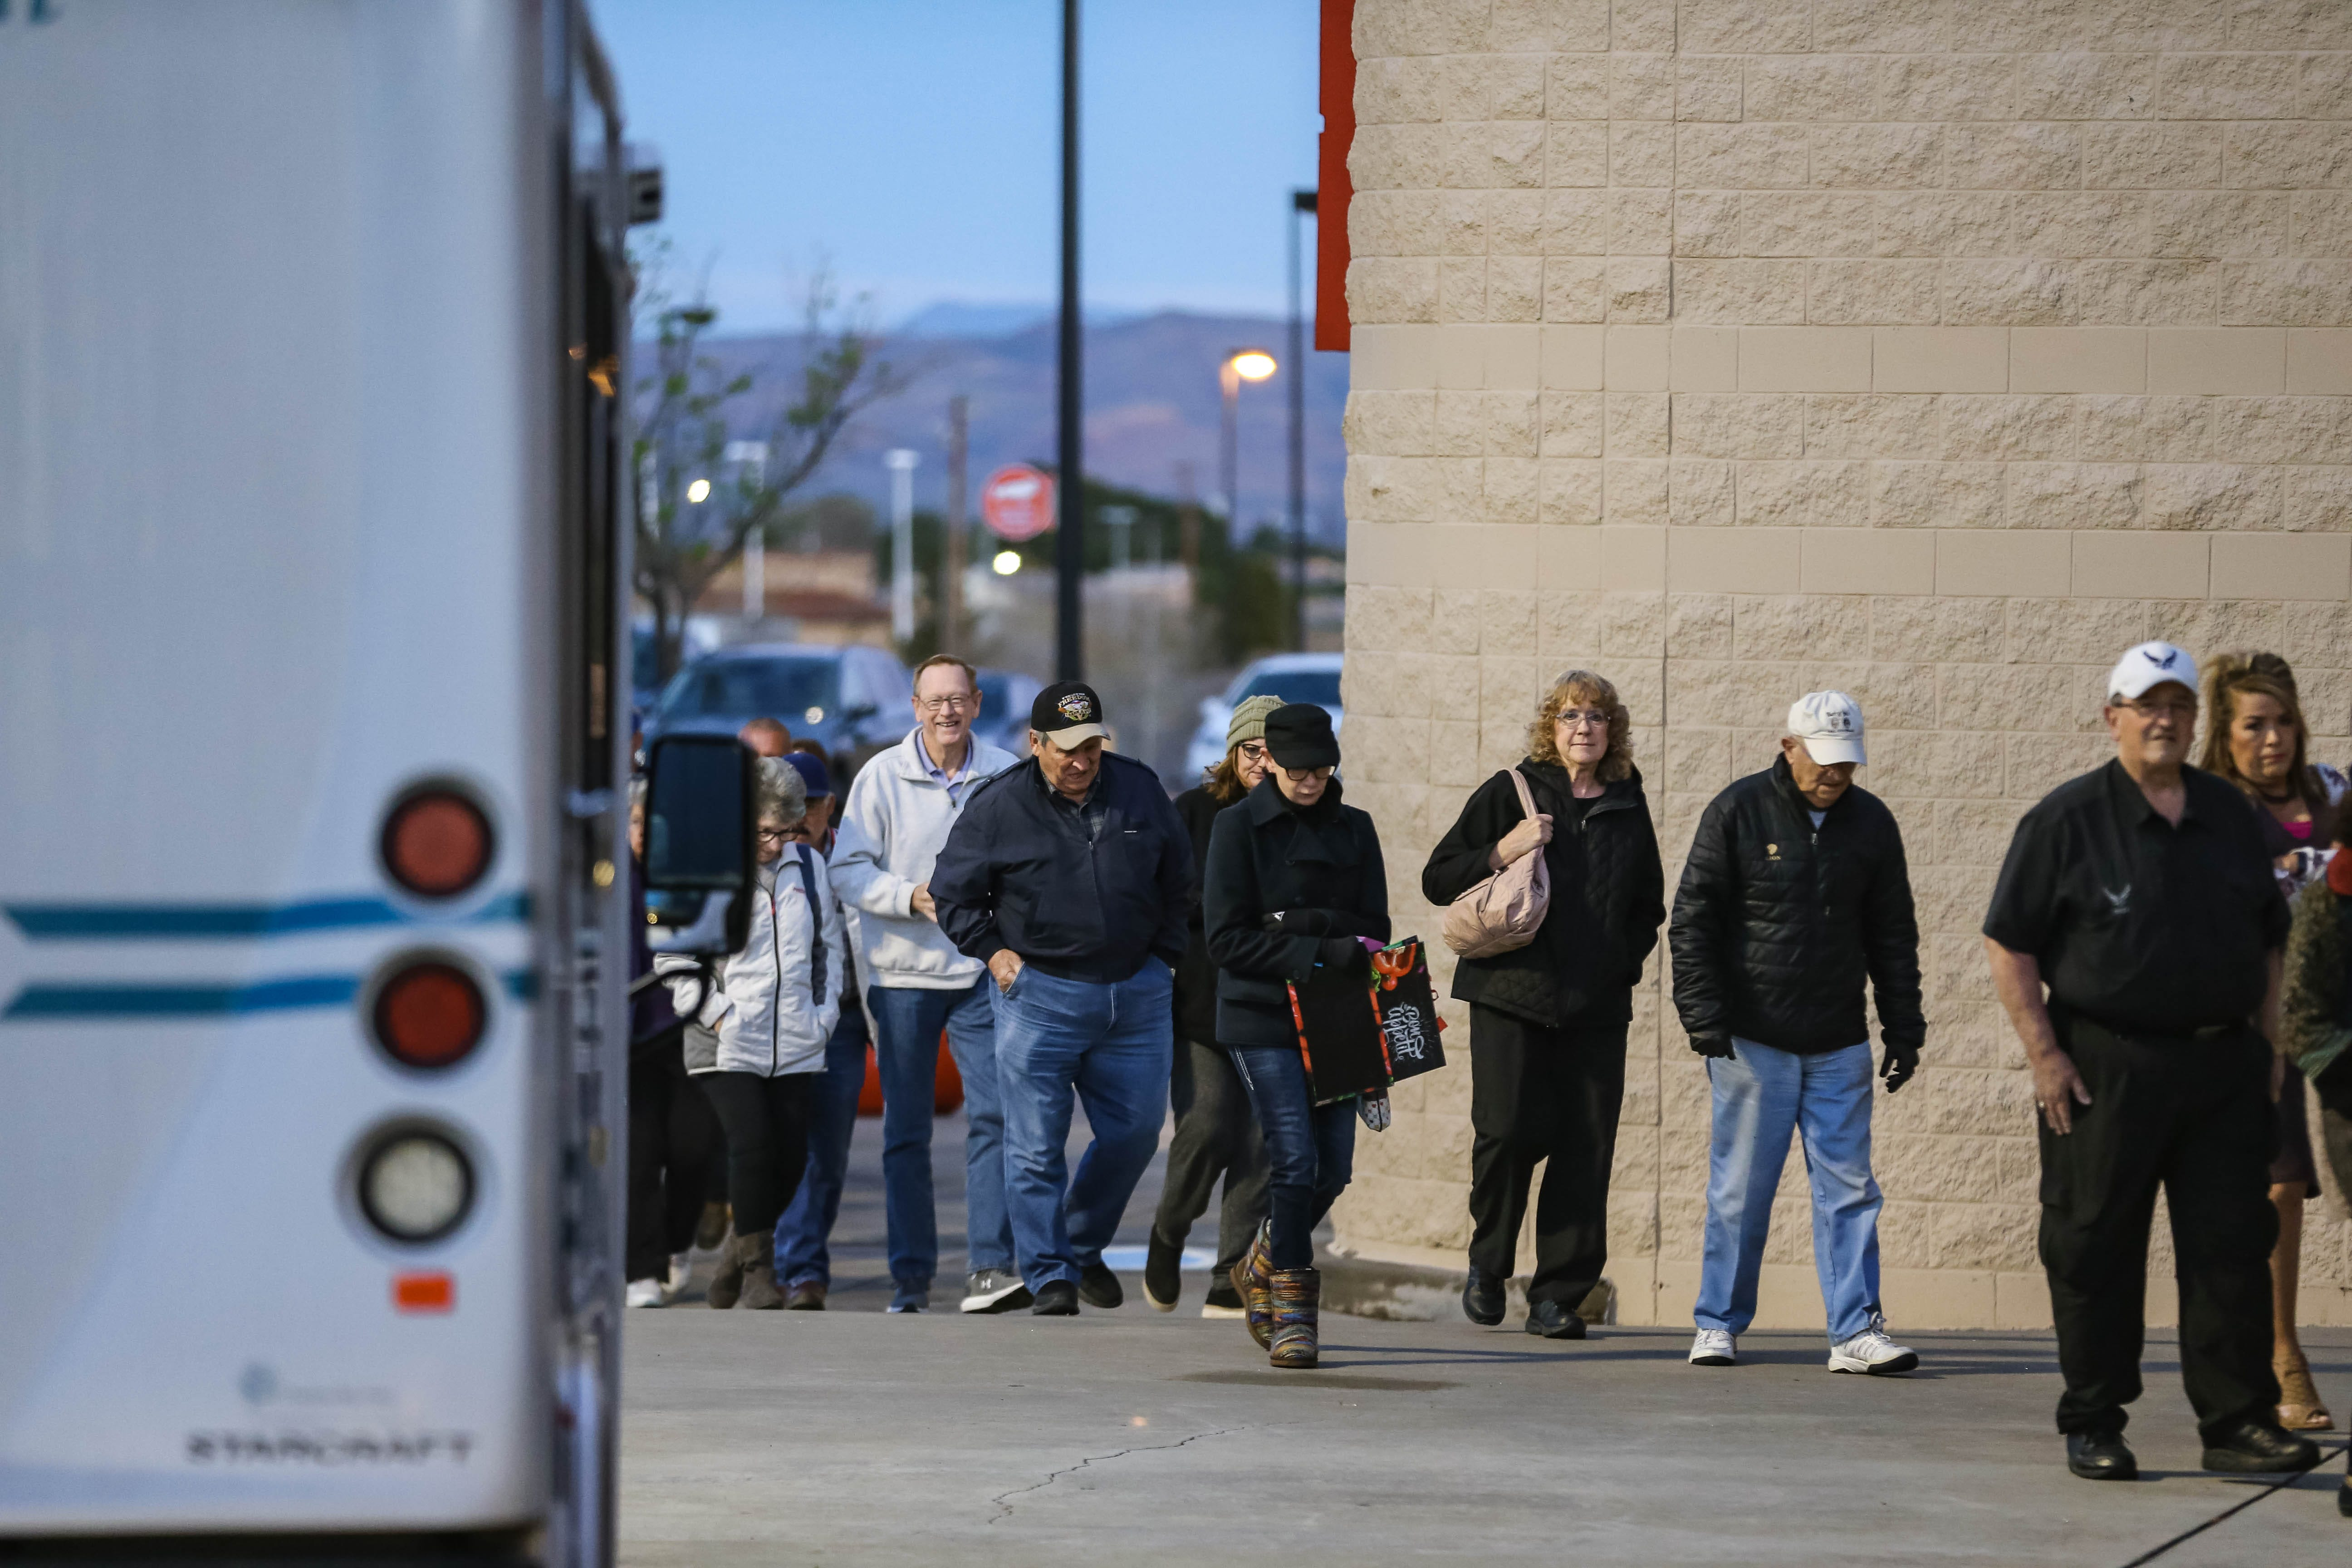 Dozens wait to shop at special early hours dedicated to senior citizens and other at-risk populations at Albertsons on Lohman in Las Cruces on Thursday, March 19, 2020.